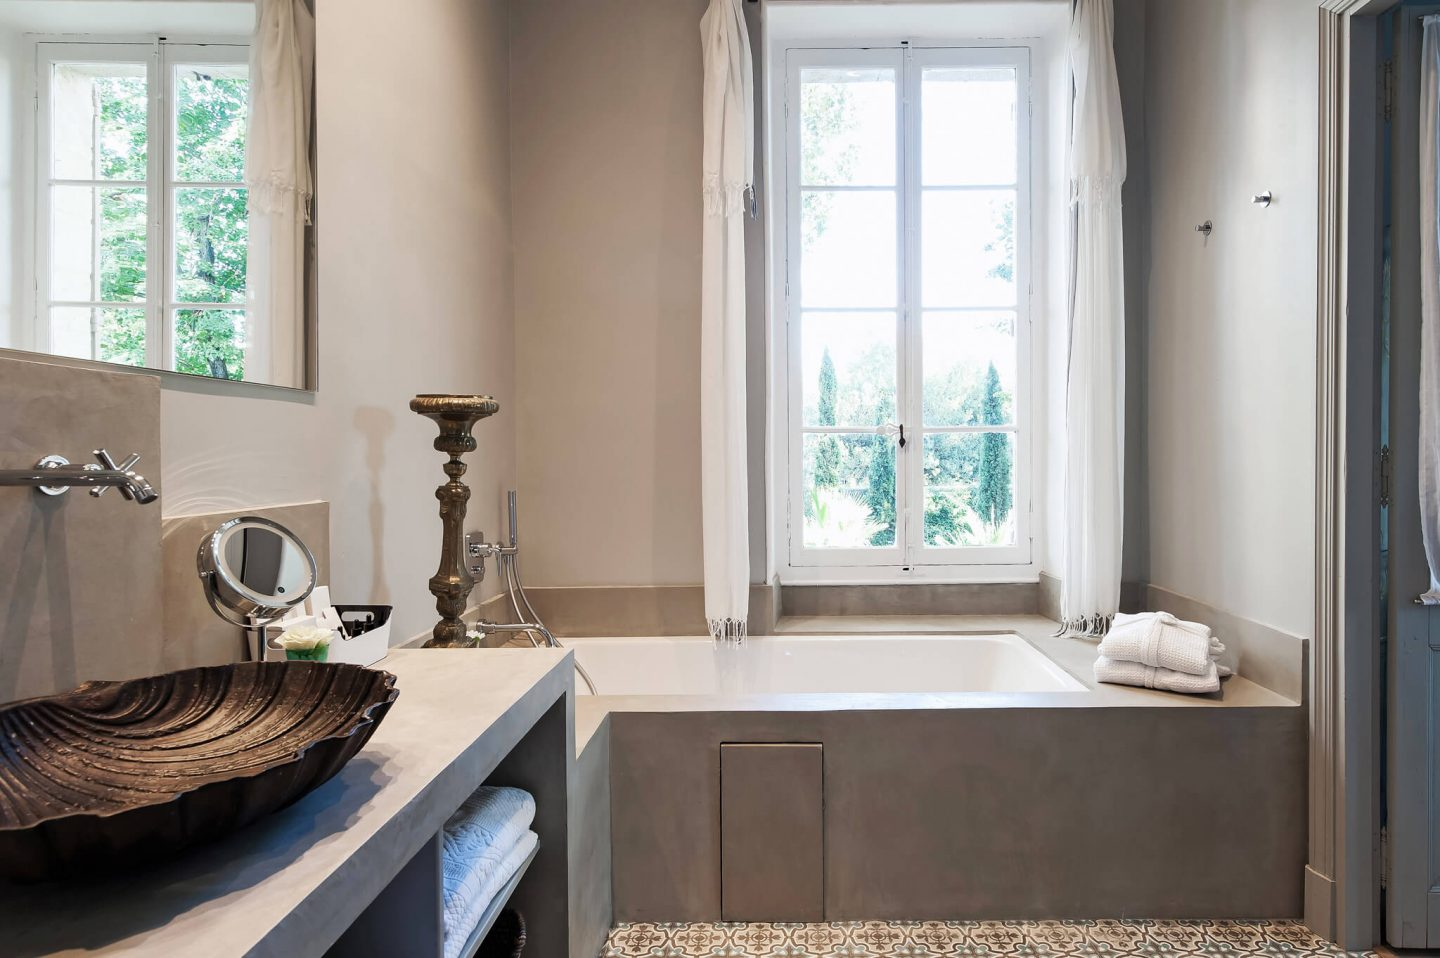 Unique vessel sink in a serene and spare modern French bathroom. Serene French Country Style interior design inspiration. The Serenity Suite at Avignon Hôtel Particulier. Luxurious and timeless restored 19th century French chateau in the South of France. Provencal romance, traditional architecture, modern French design, unique art, and European antiques. Photo: Haven In.